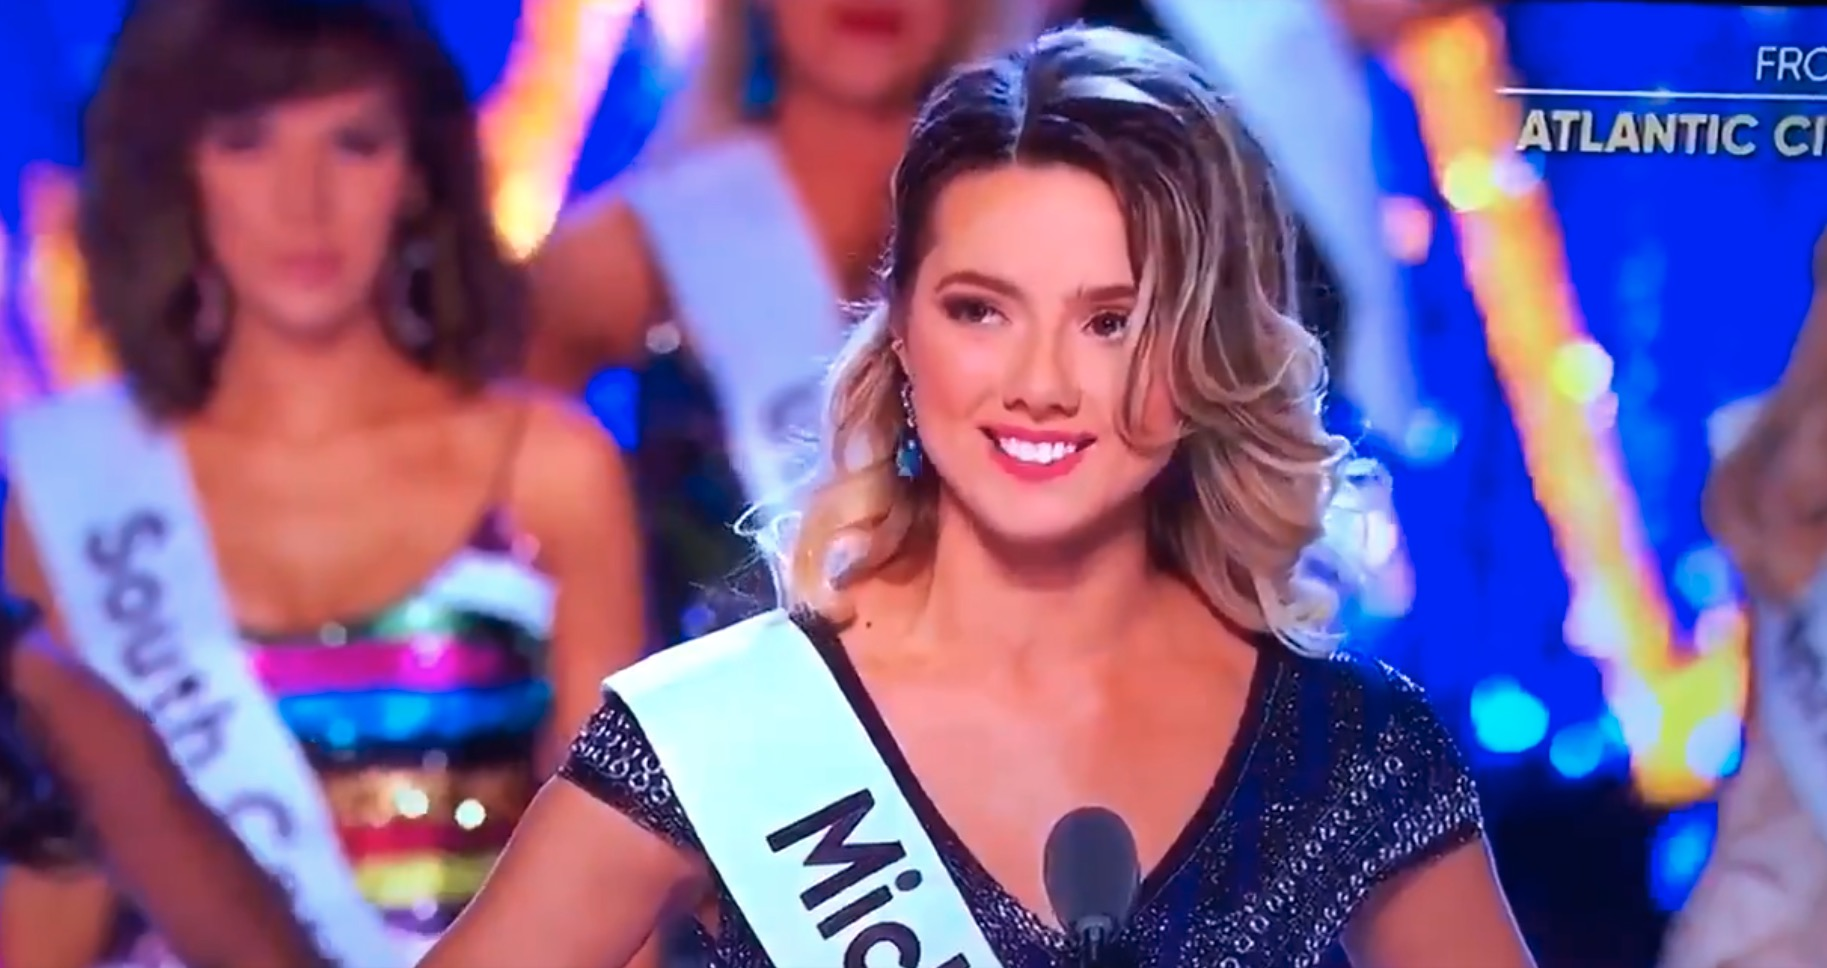 Miss Michigan Emily Sioma competing in the 2018 Miss America pageant